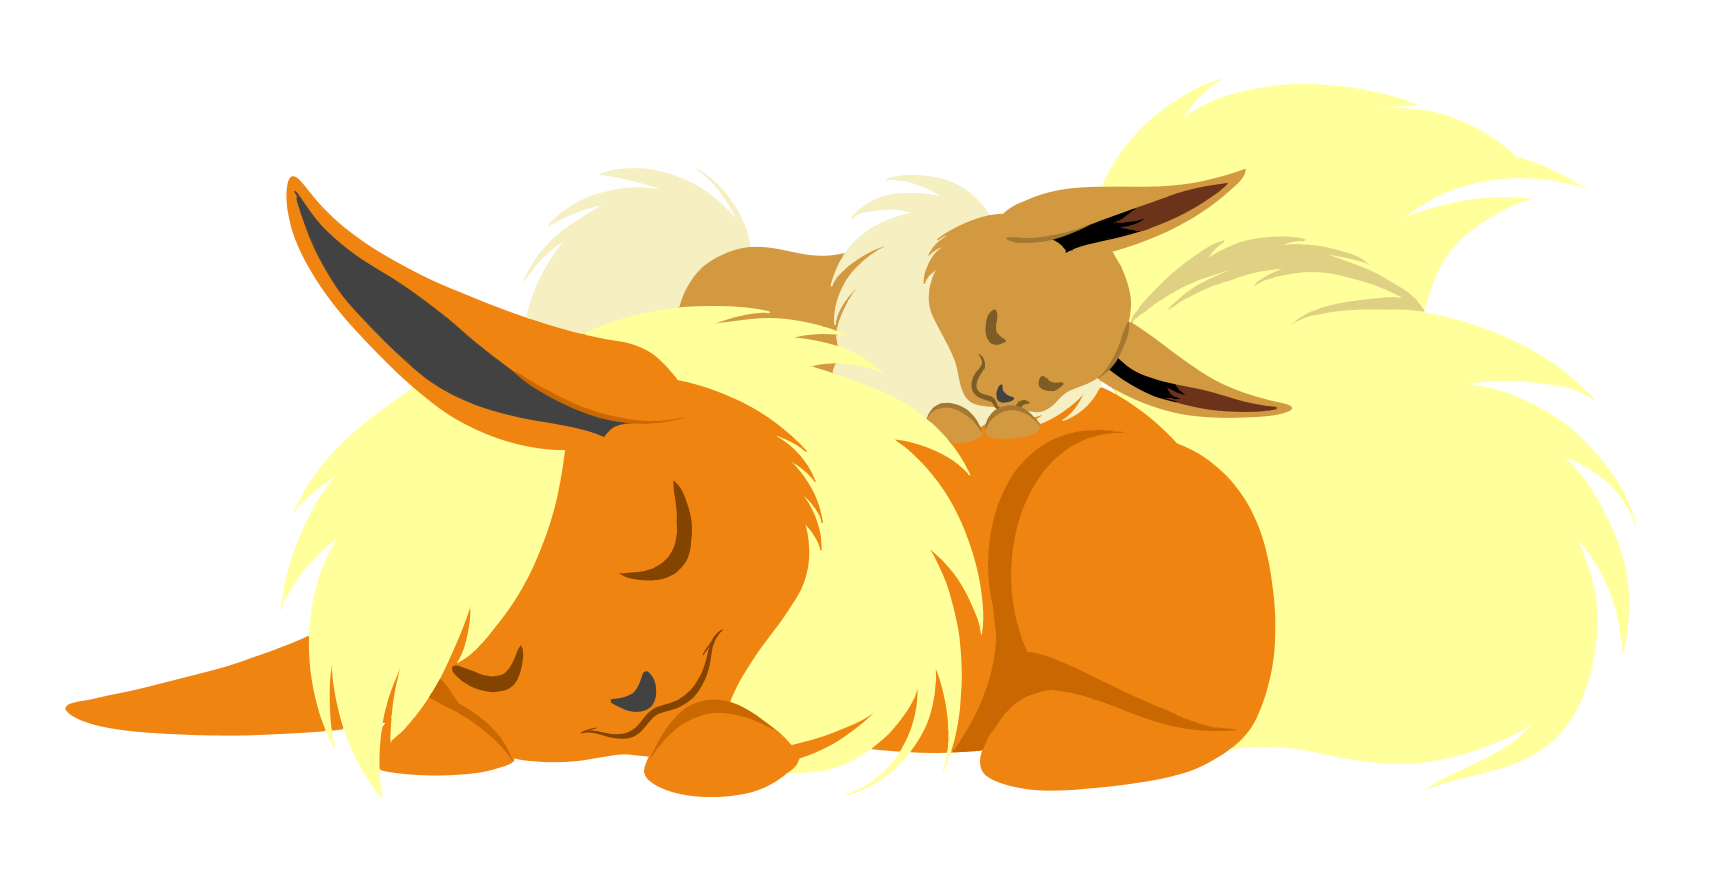 e621 ascar_angainor canine duo eevee eeveelution eyes_closed female feral flareon fox hi_res mammal nintendo pokémon simple_background sleeping video_games